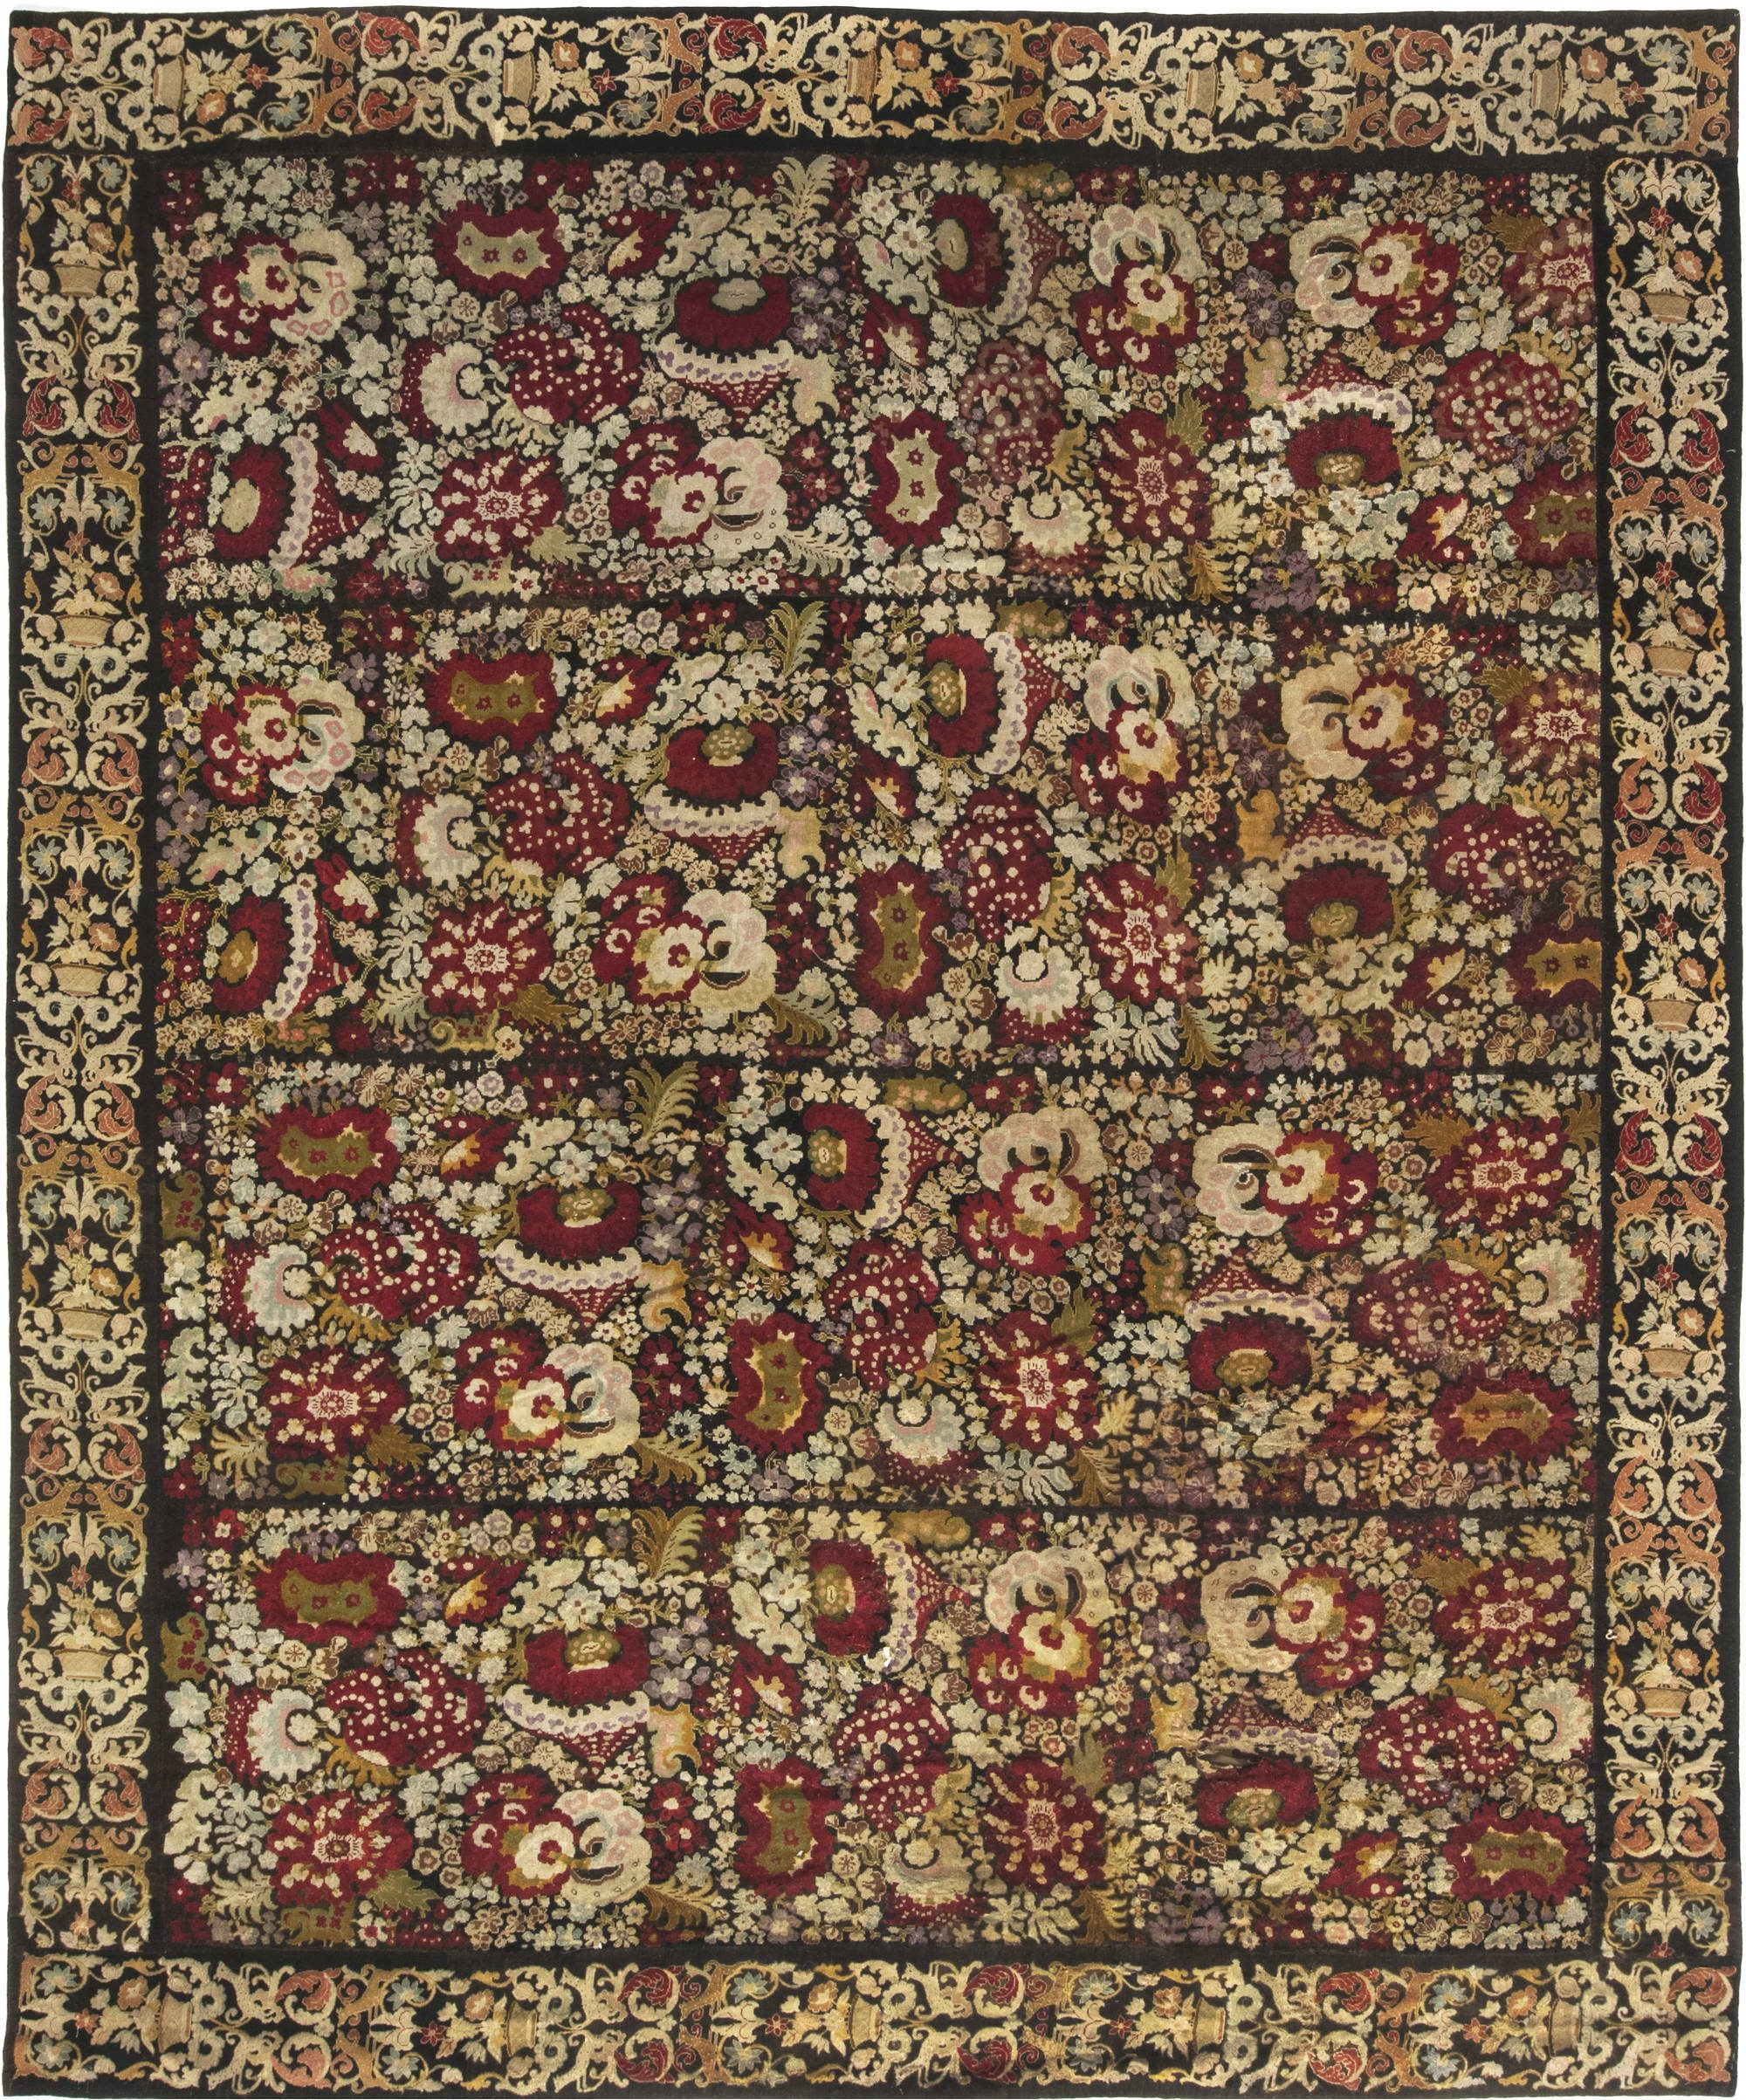 19th Century English Needlework Rug BB6645